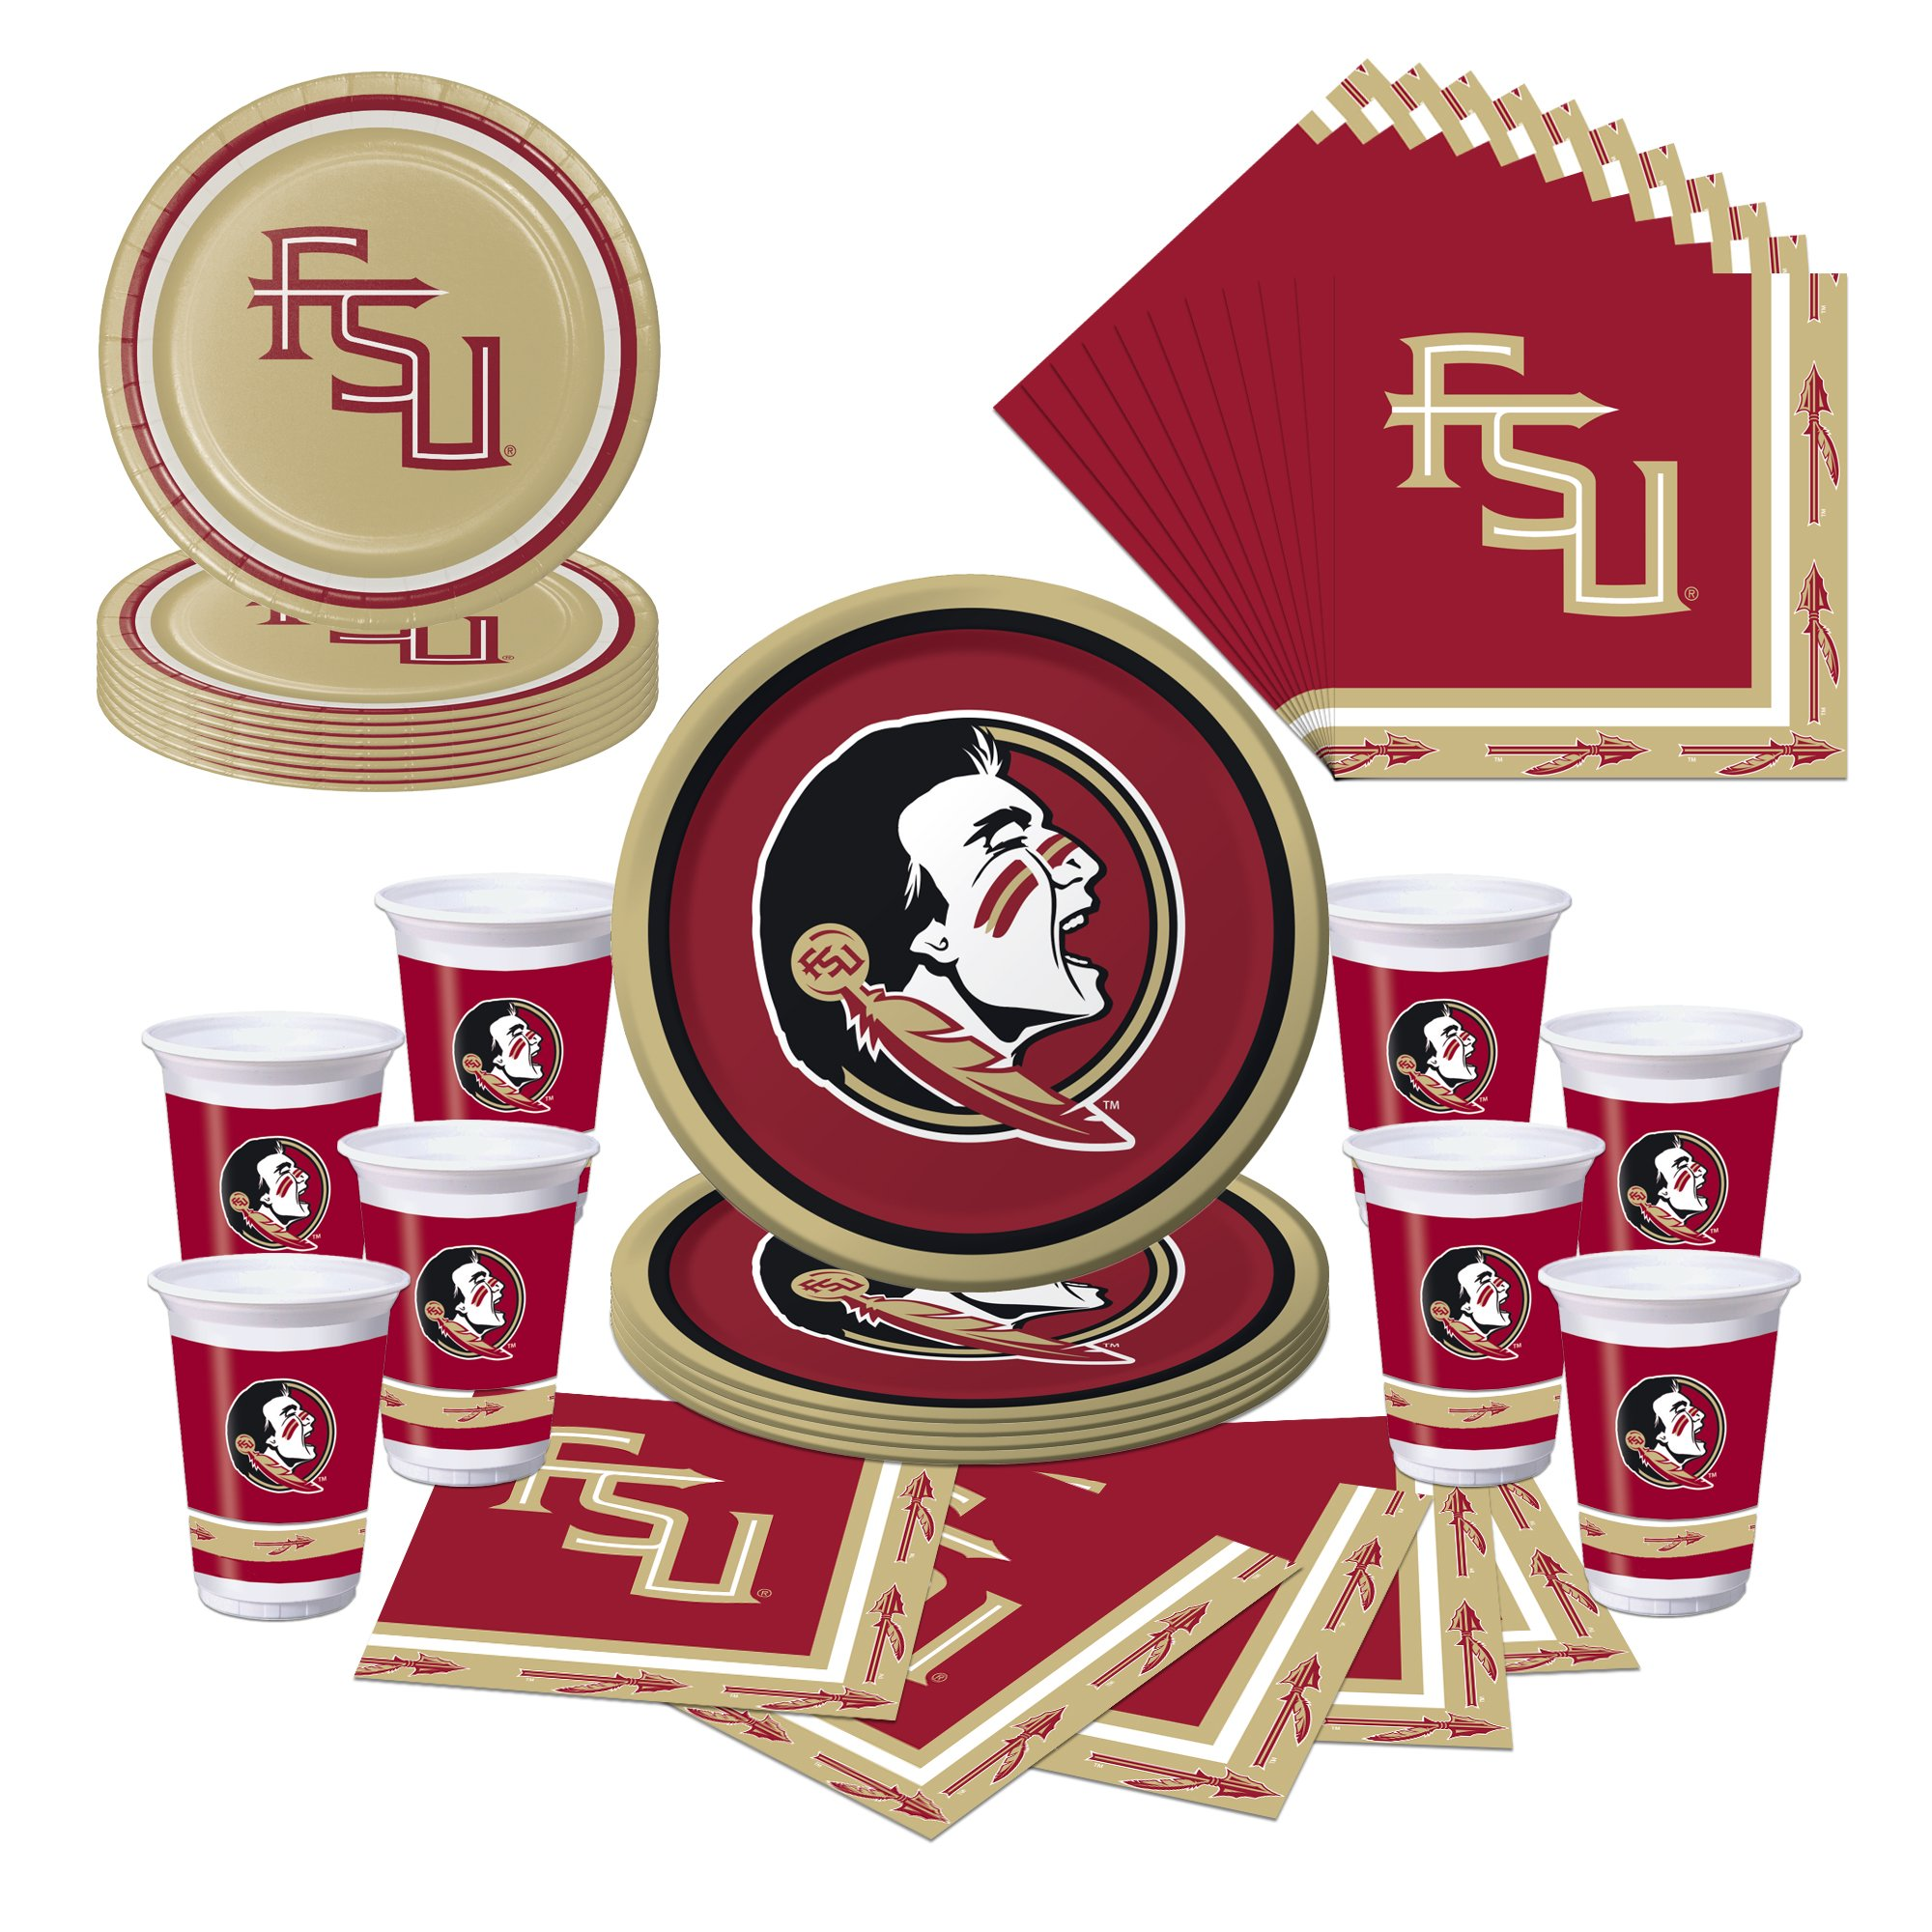 Florida State Seminoles Party Pack - Plates, Cups, Napkins - Serves 8